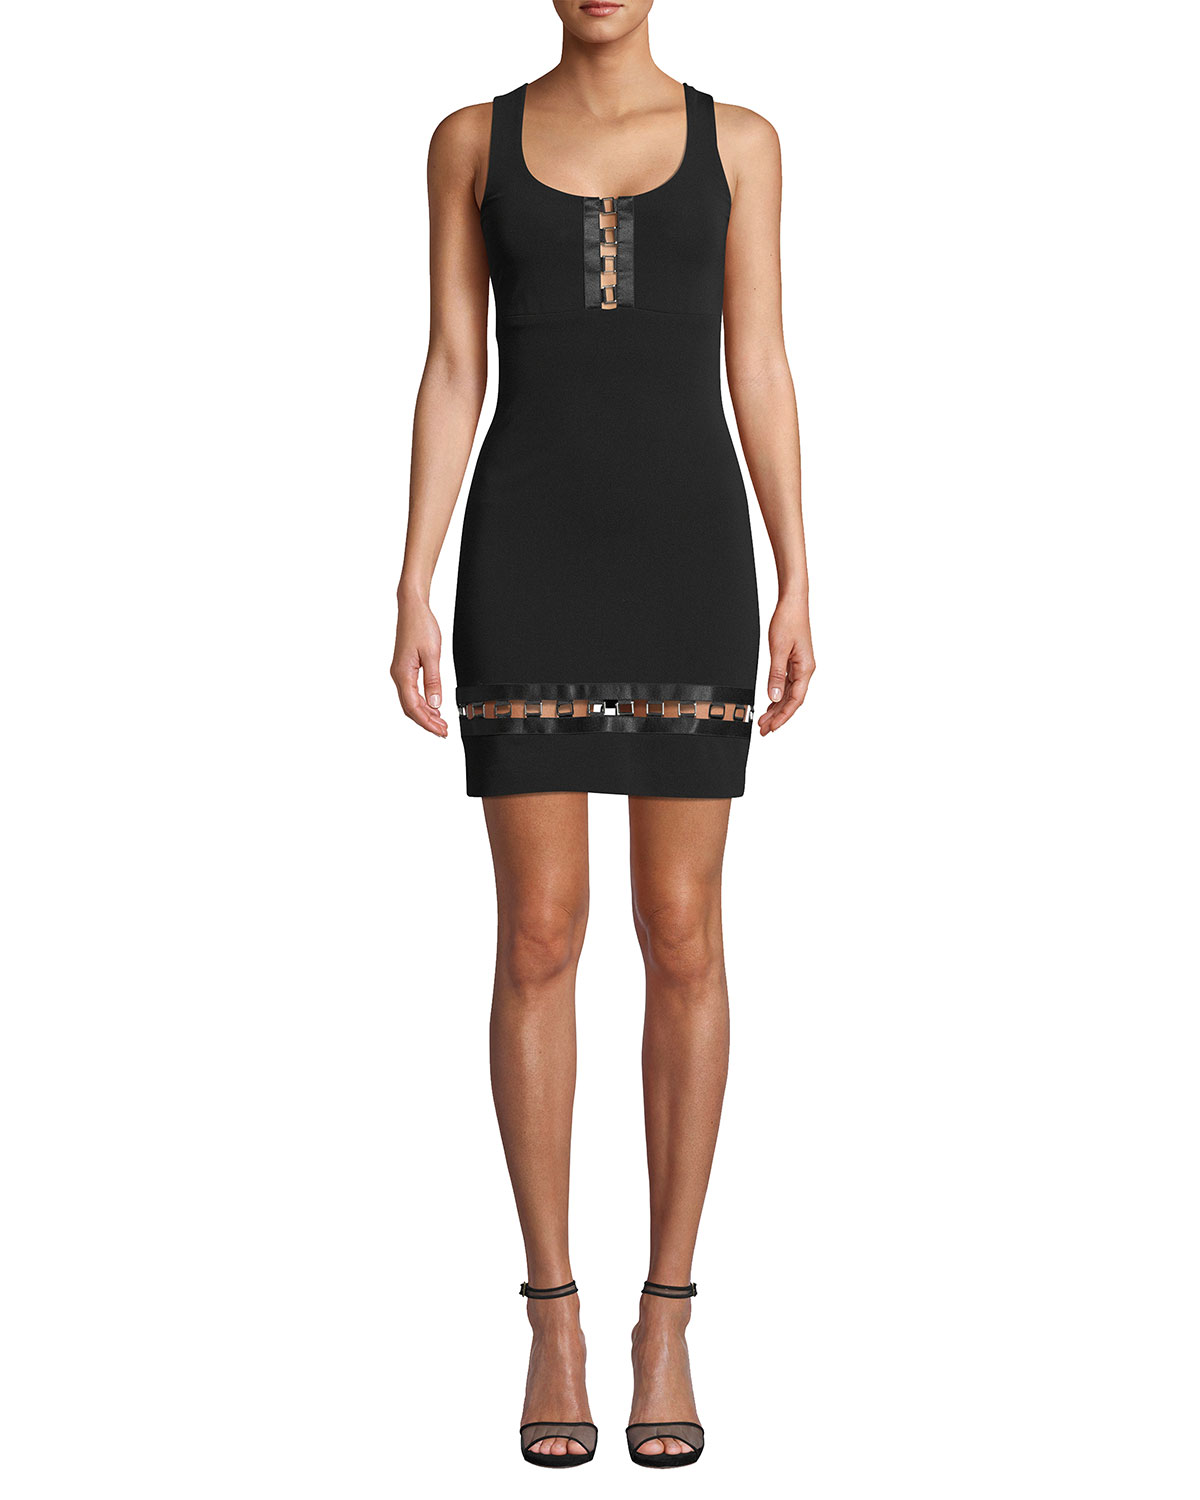 Nicole Miller Embellished Square-Neck Sleeveless Heavy Jersey Mini Dress